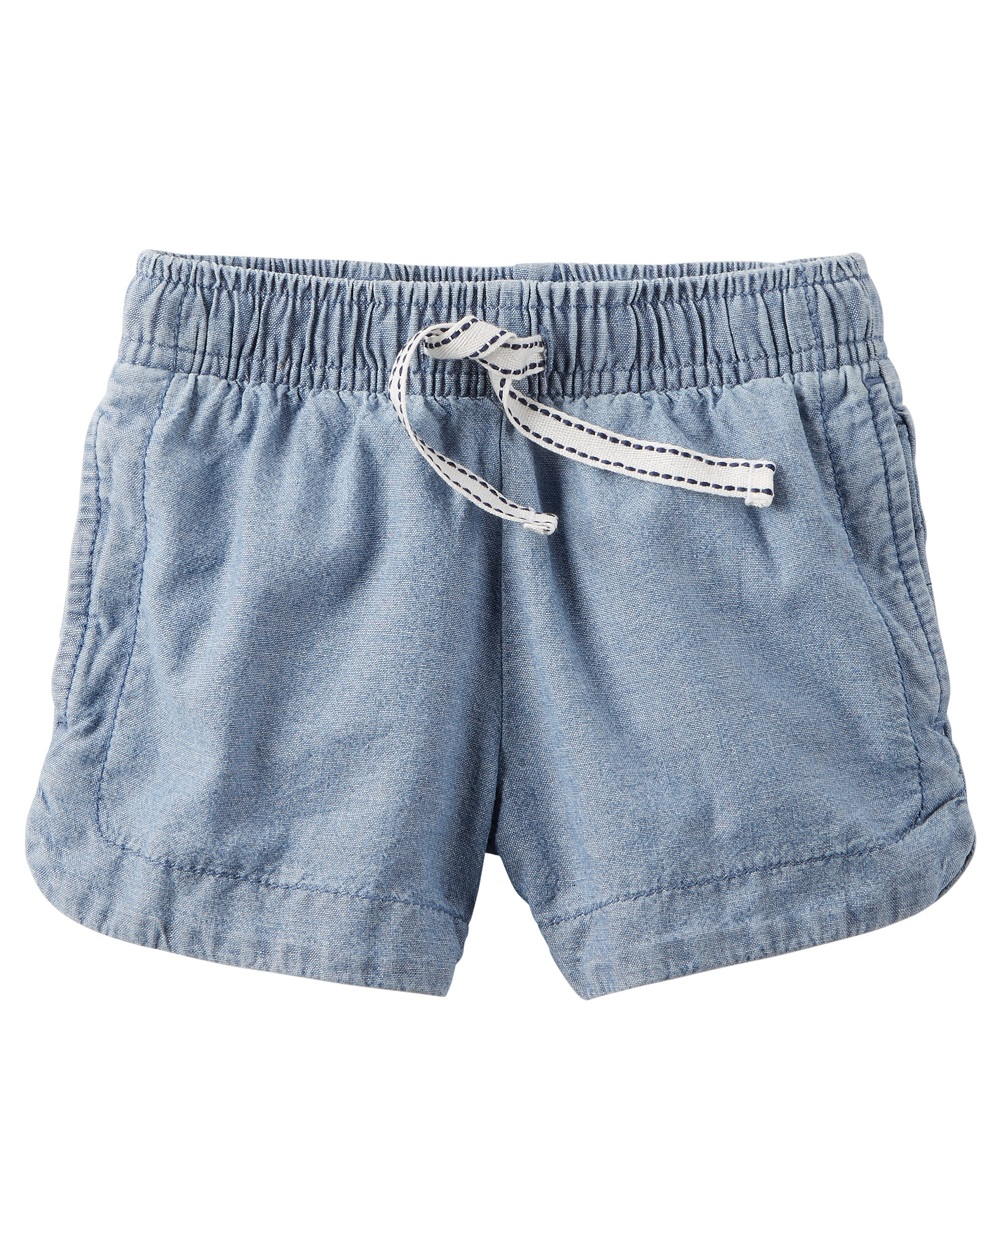 Carter's Baby Girls' Chambray Pull-On Shorts, 3 Months